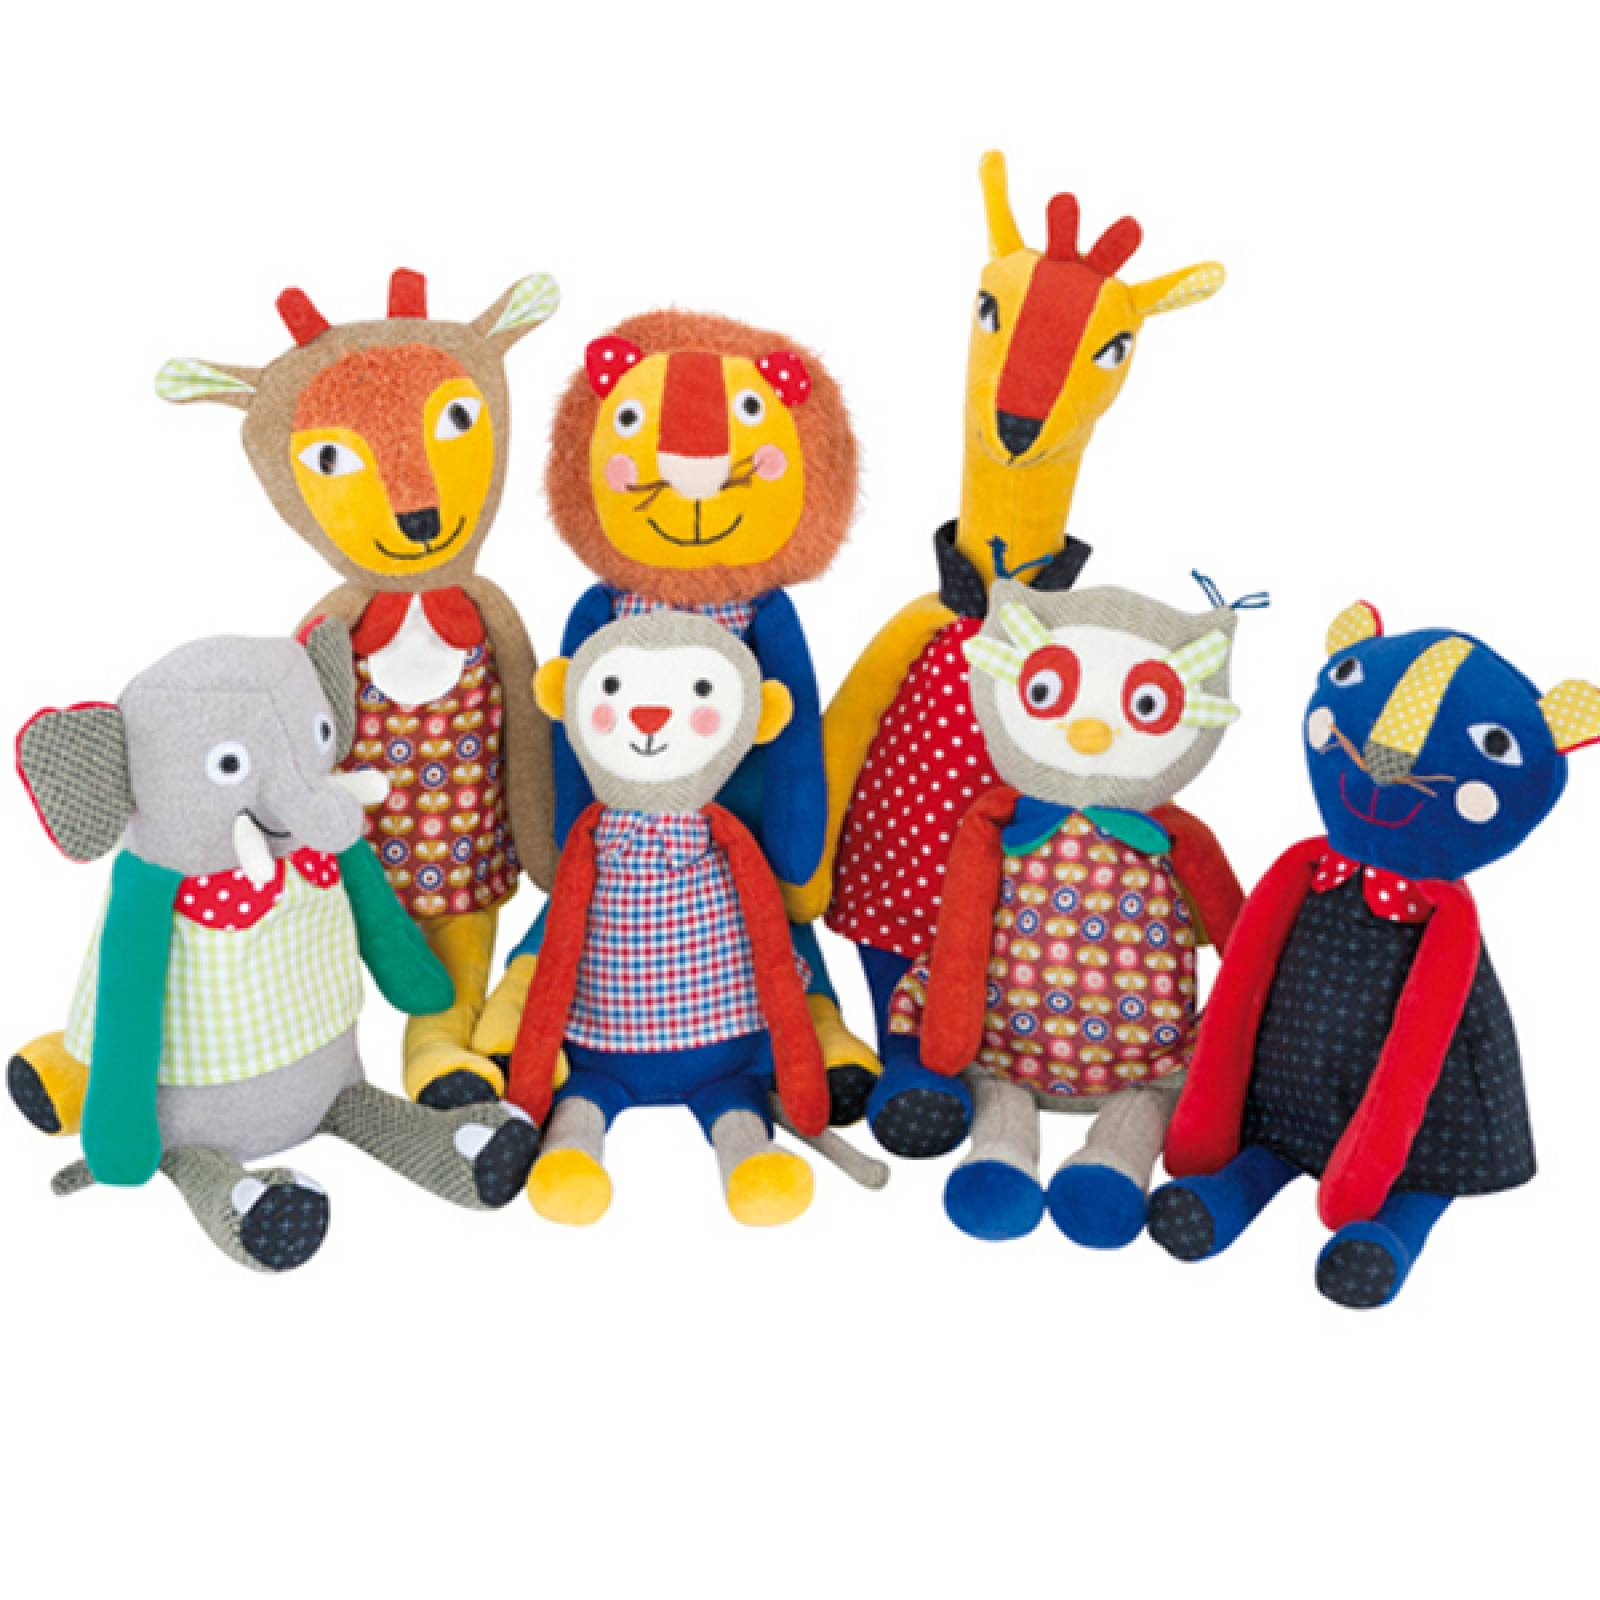 Les Popipop Soft Toys Assorted Animals By Moulin Roty